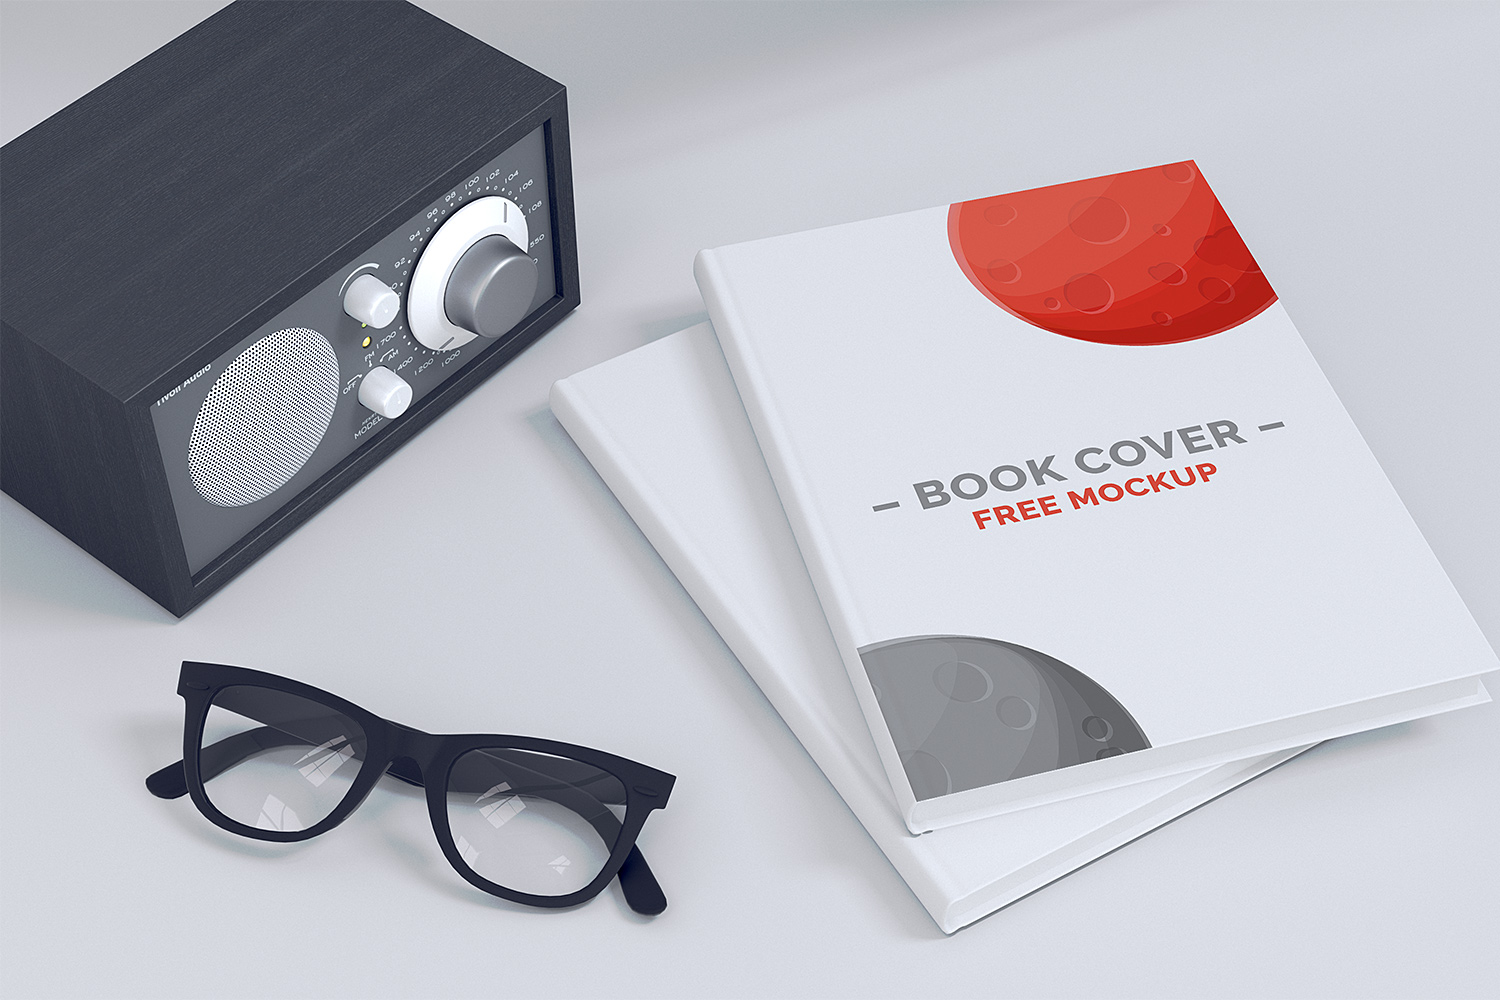 Book Cover Free Mockup